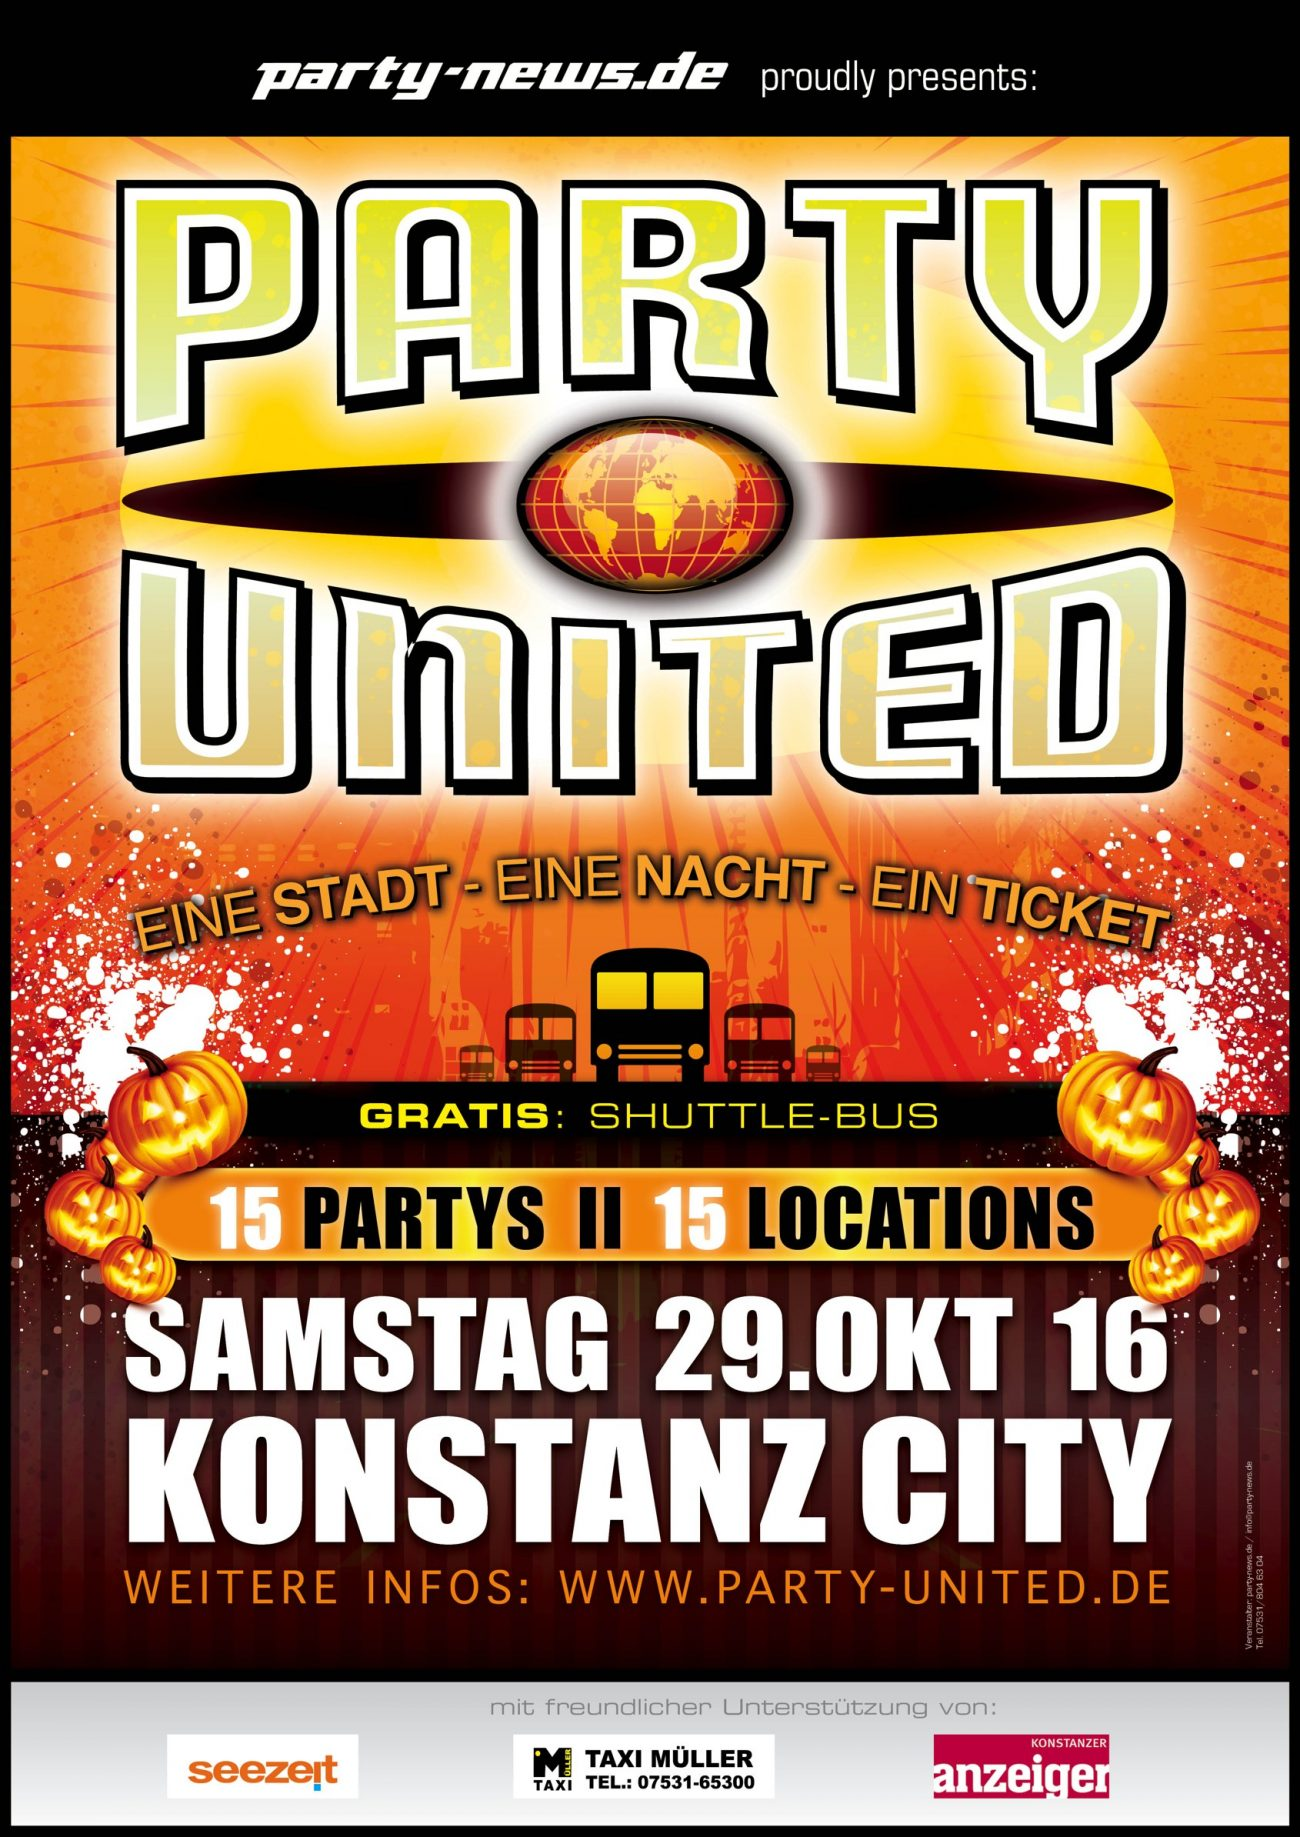 party united sa 29 10 16 konszanz city 15 partys flyer wall